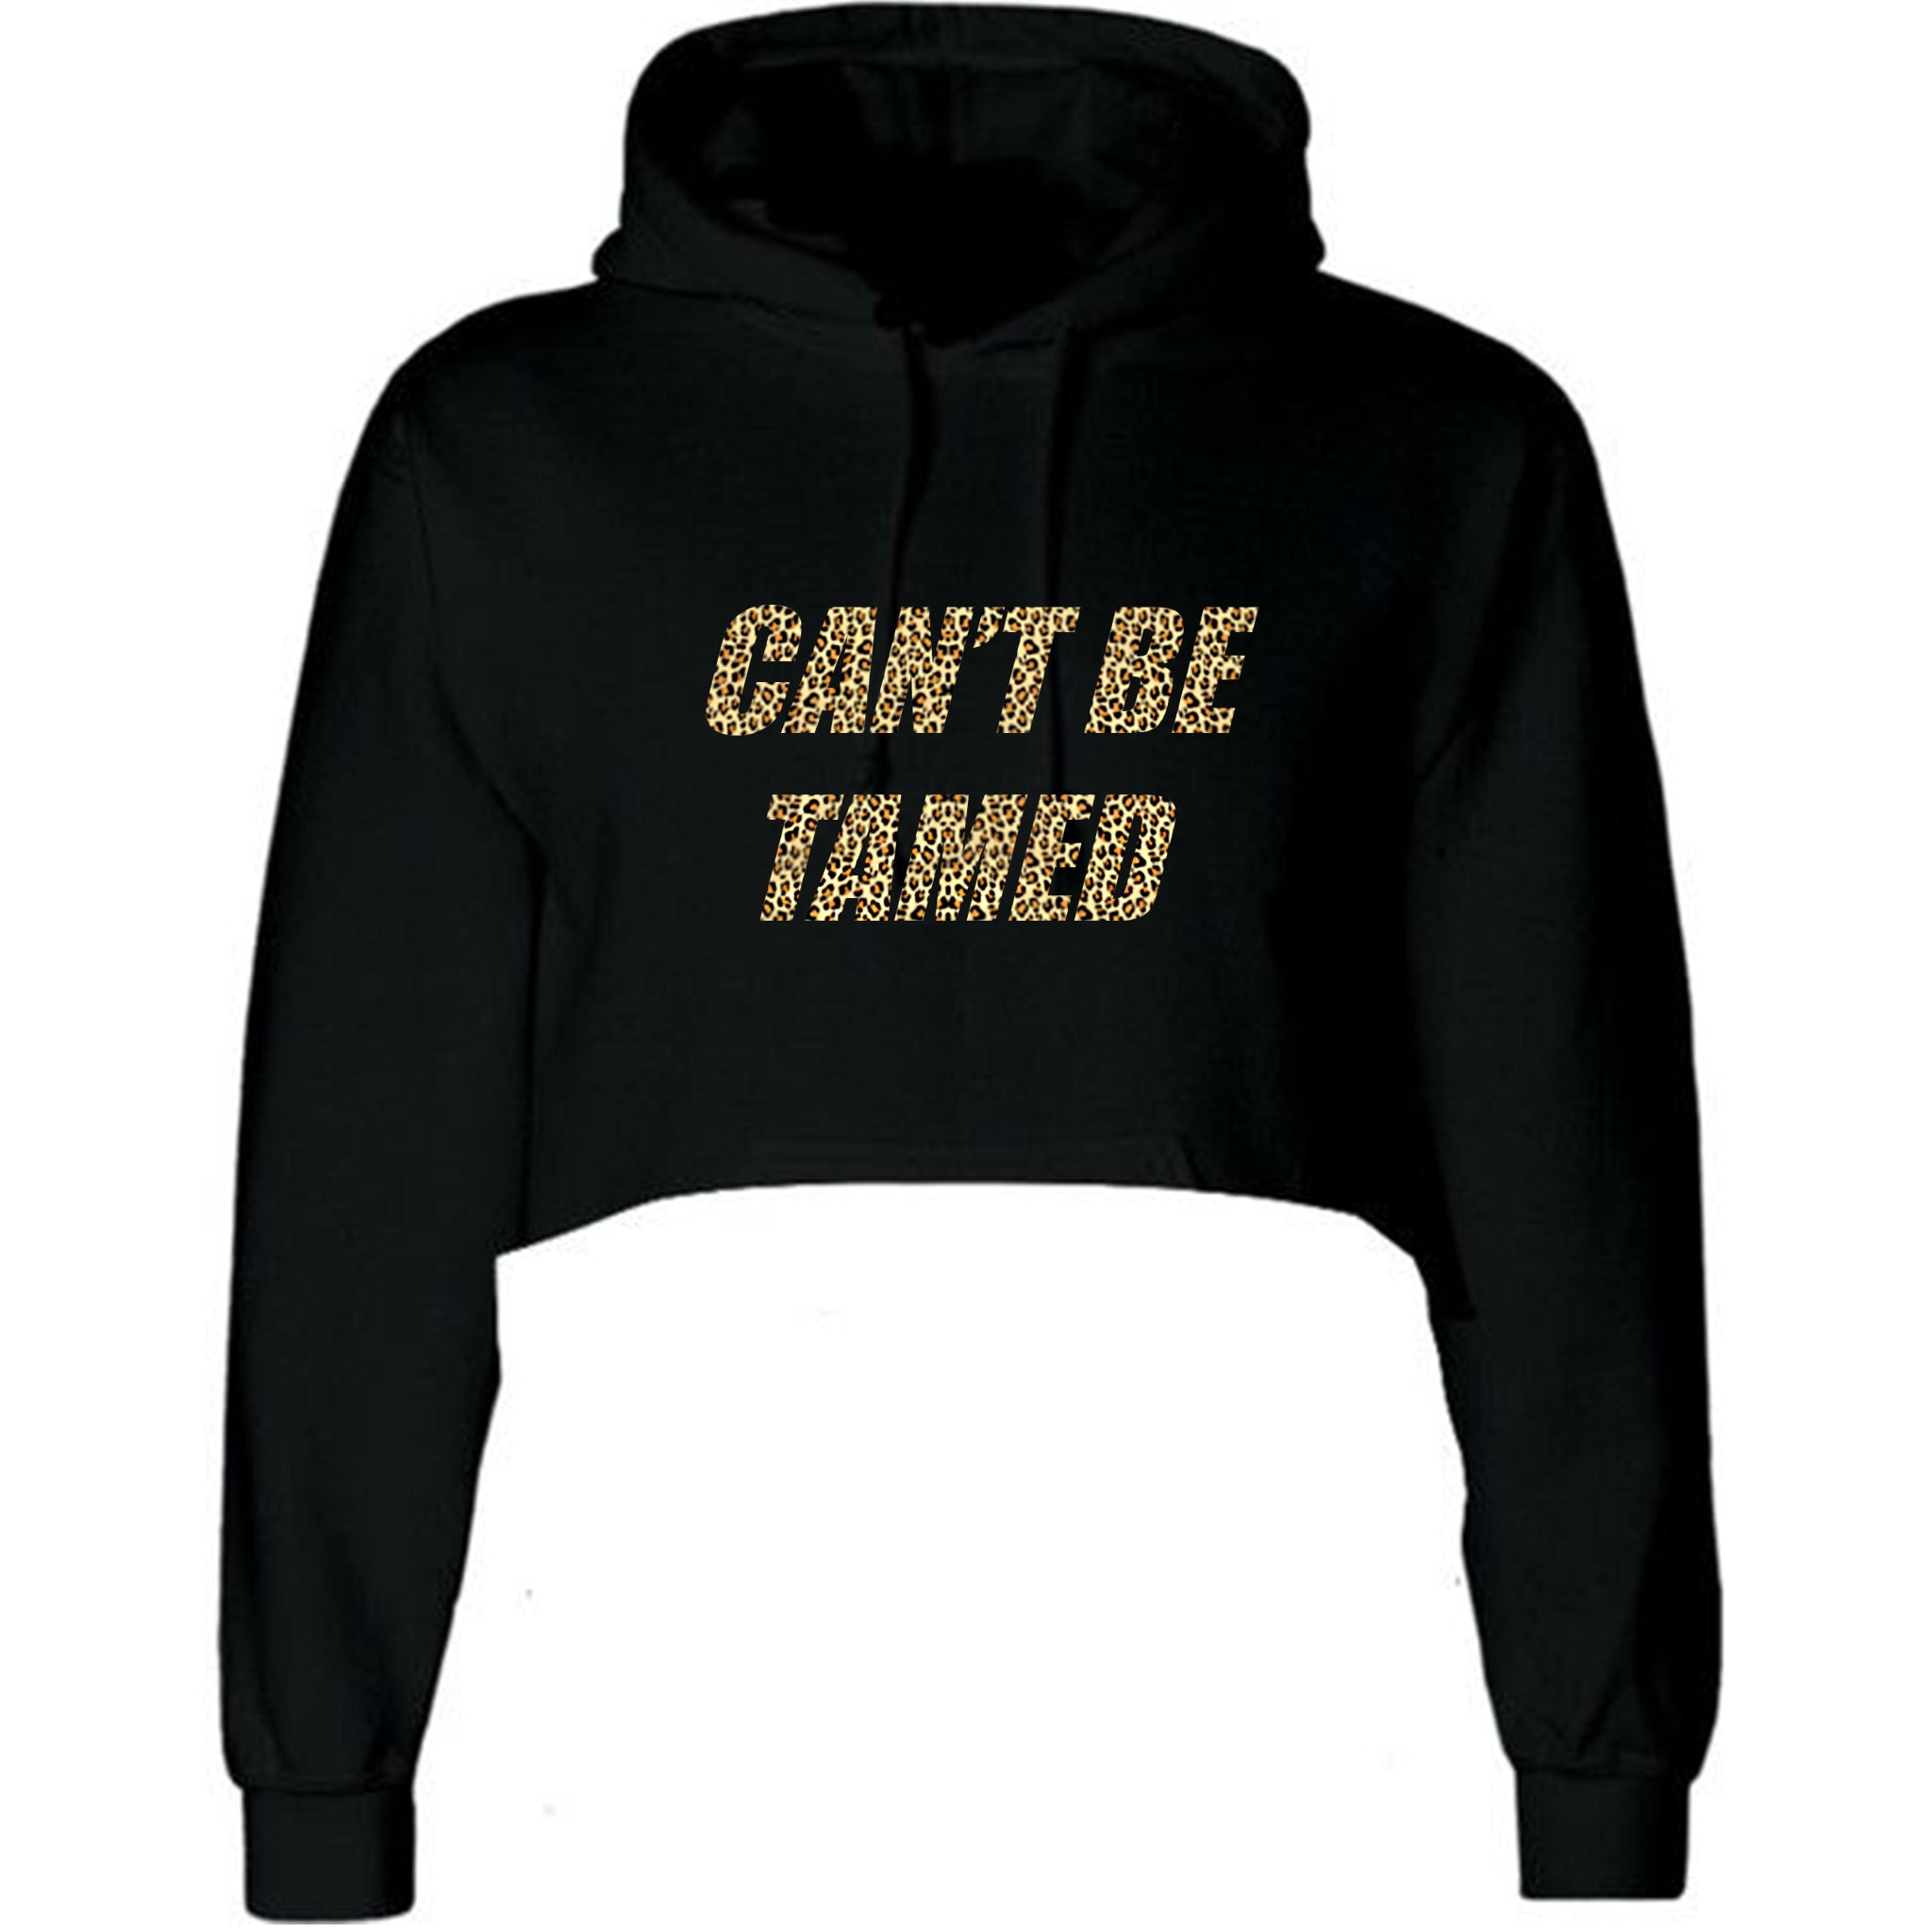 CAN'T BE TAMED W/ CHEETAH TEXT [WOMEN'S CROP HOODIE SWEATSHIRT]